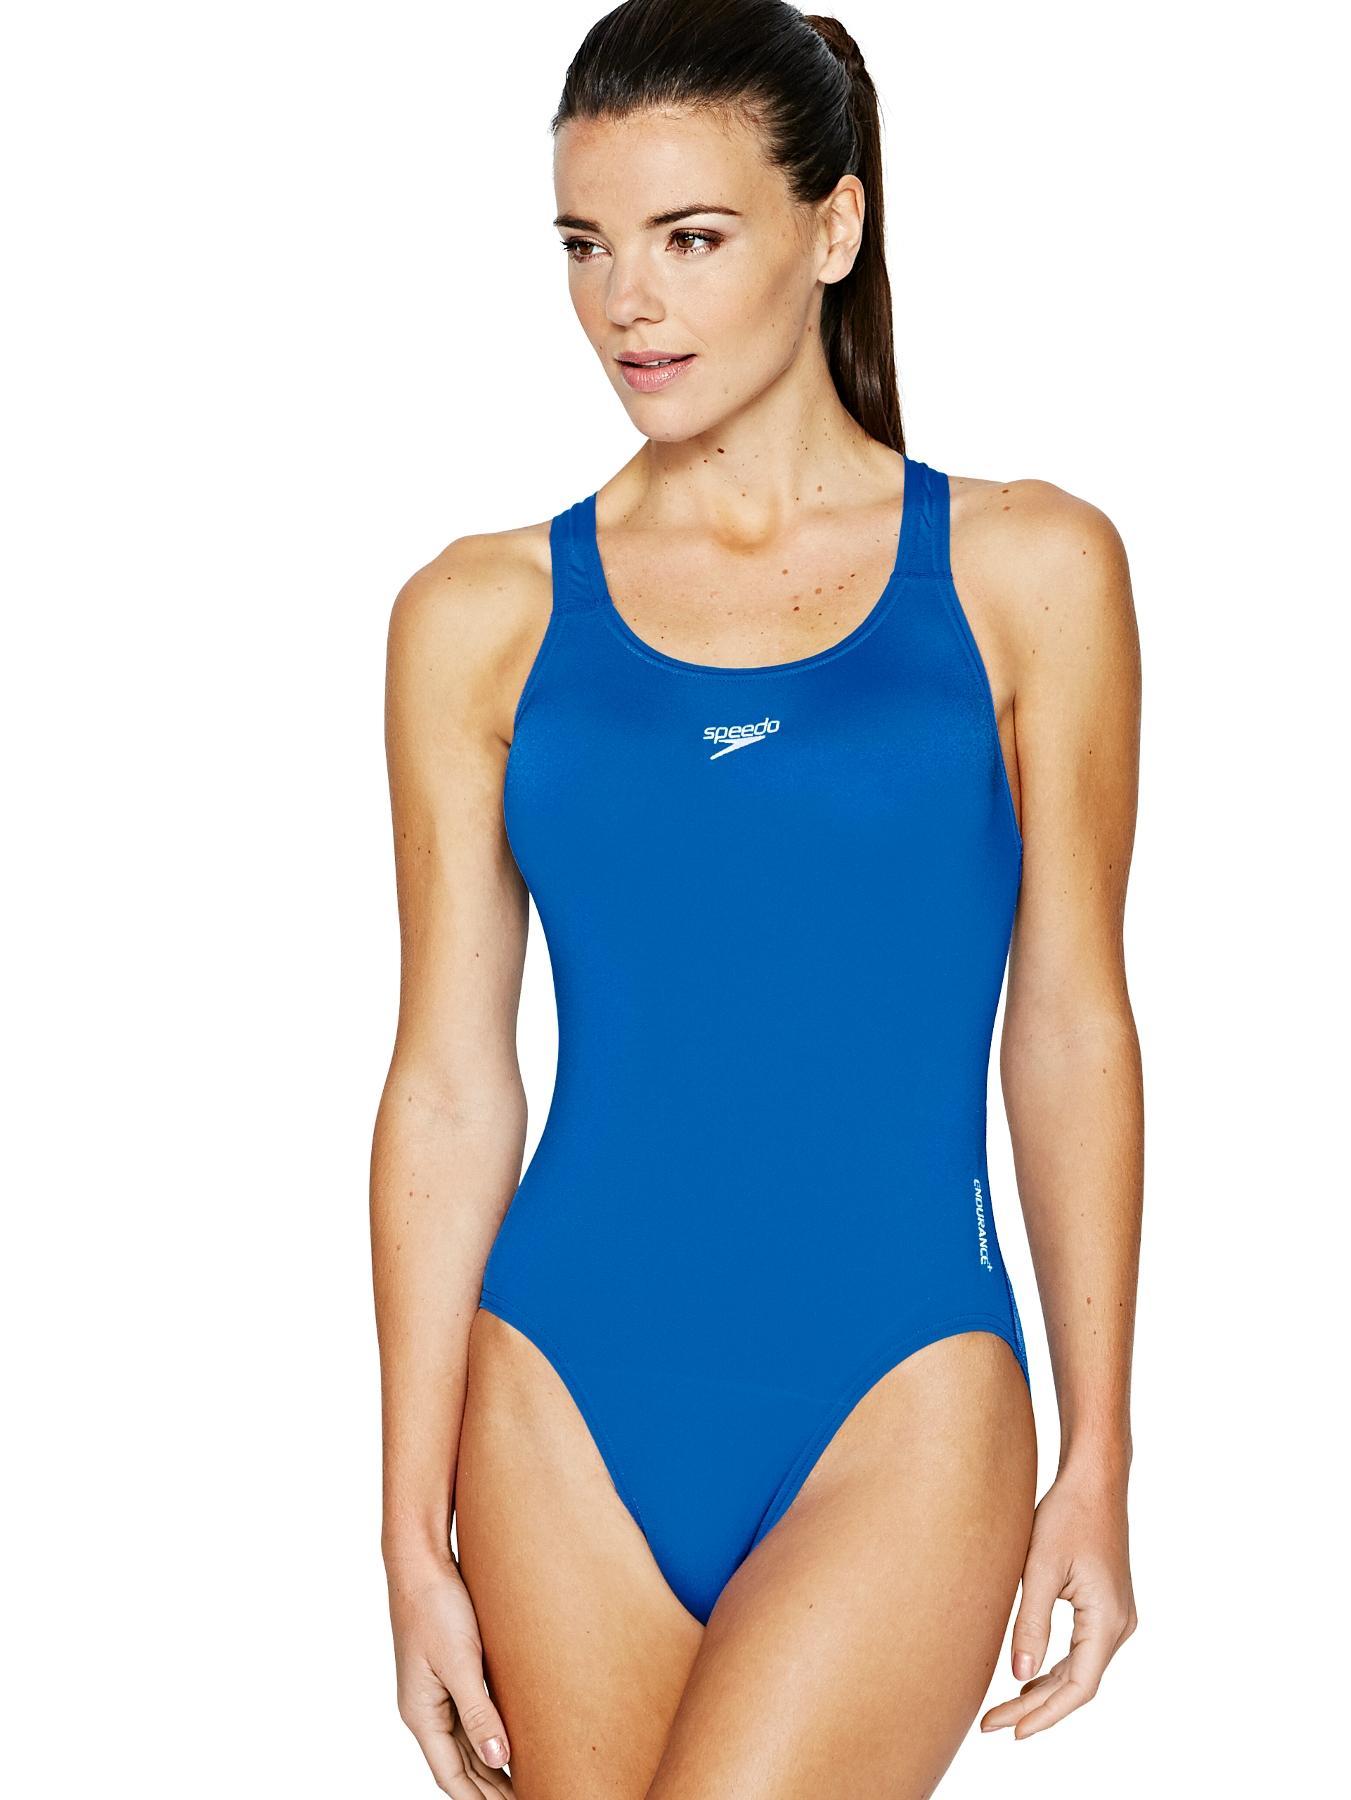 Essential Endurance+ Medalist Swimsuit, Blue,Black